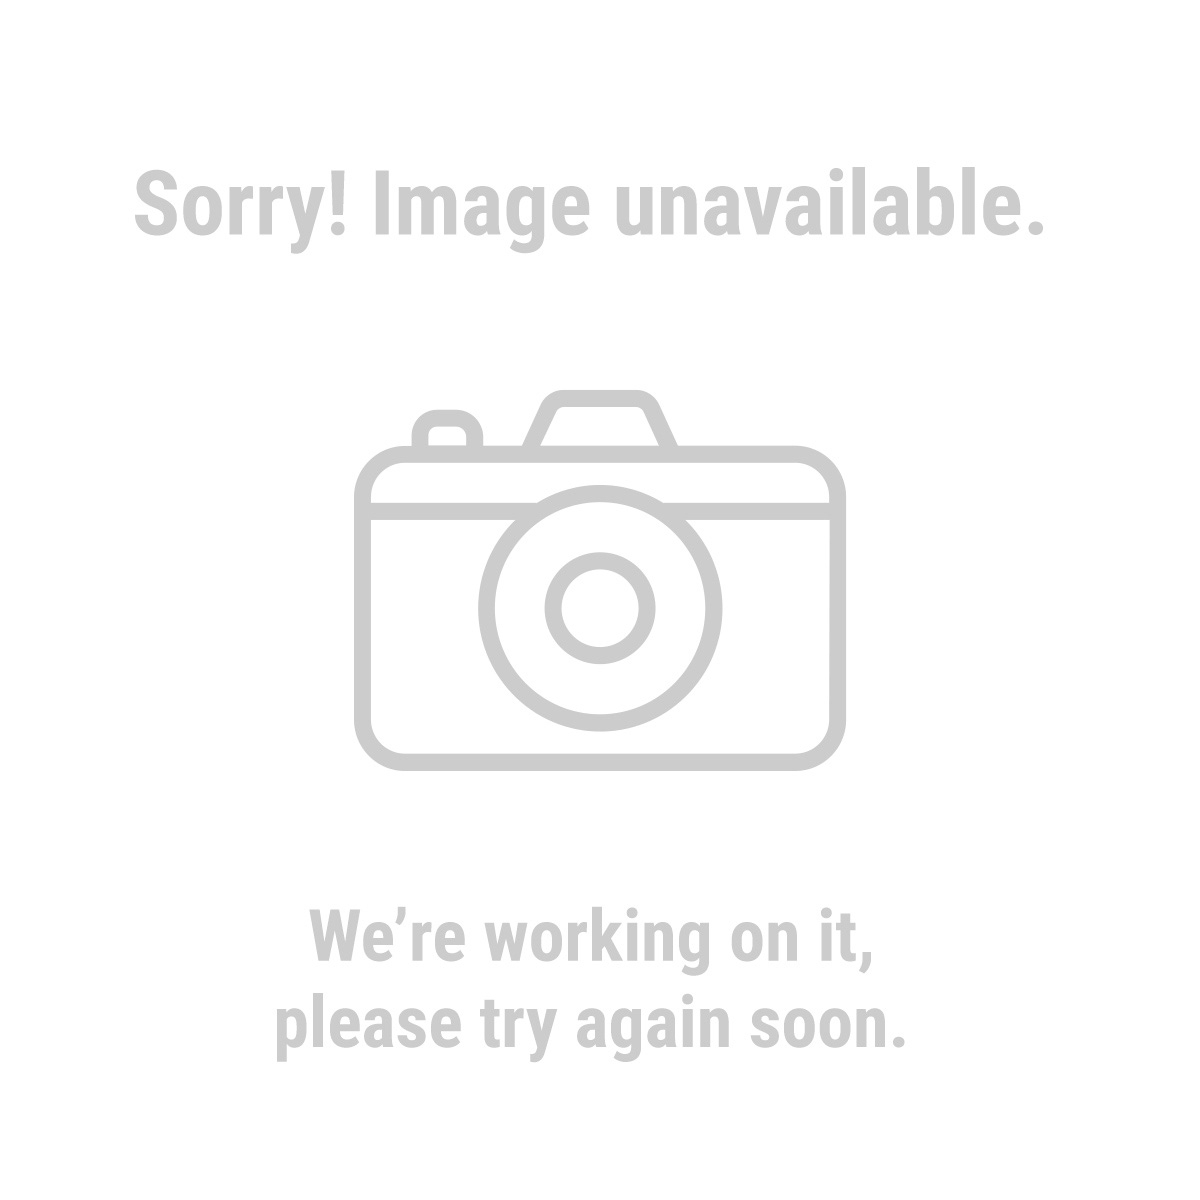 Haul-Master 47698 1/4'' x 35 Ft. Chain Coil